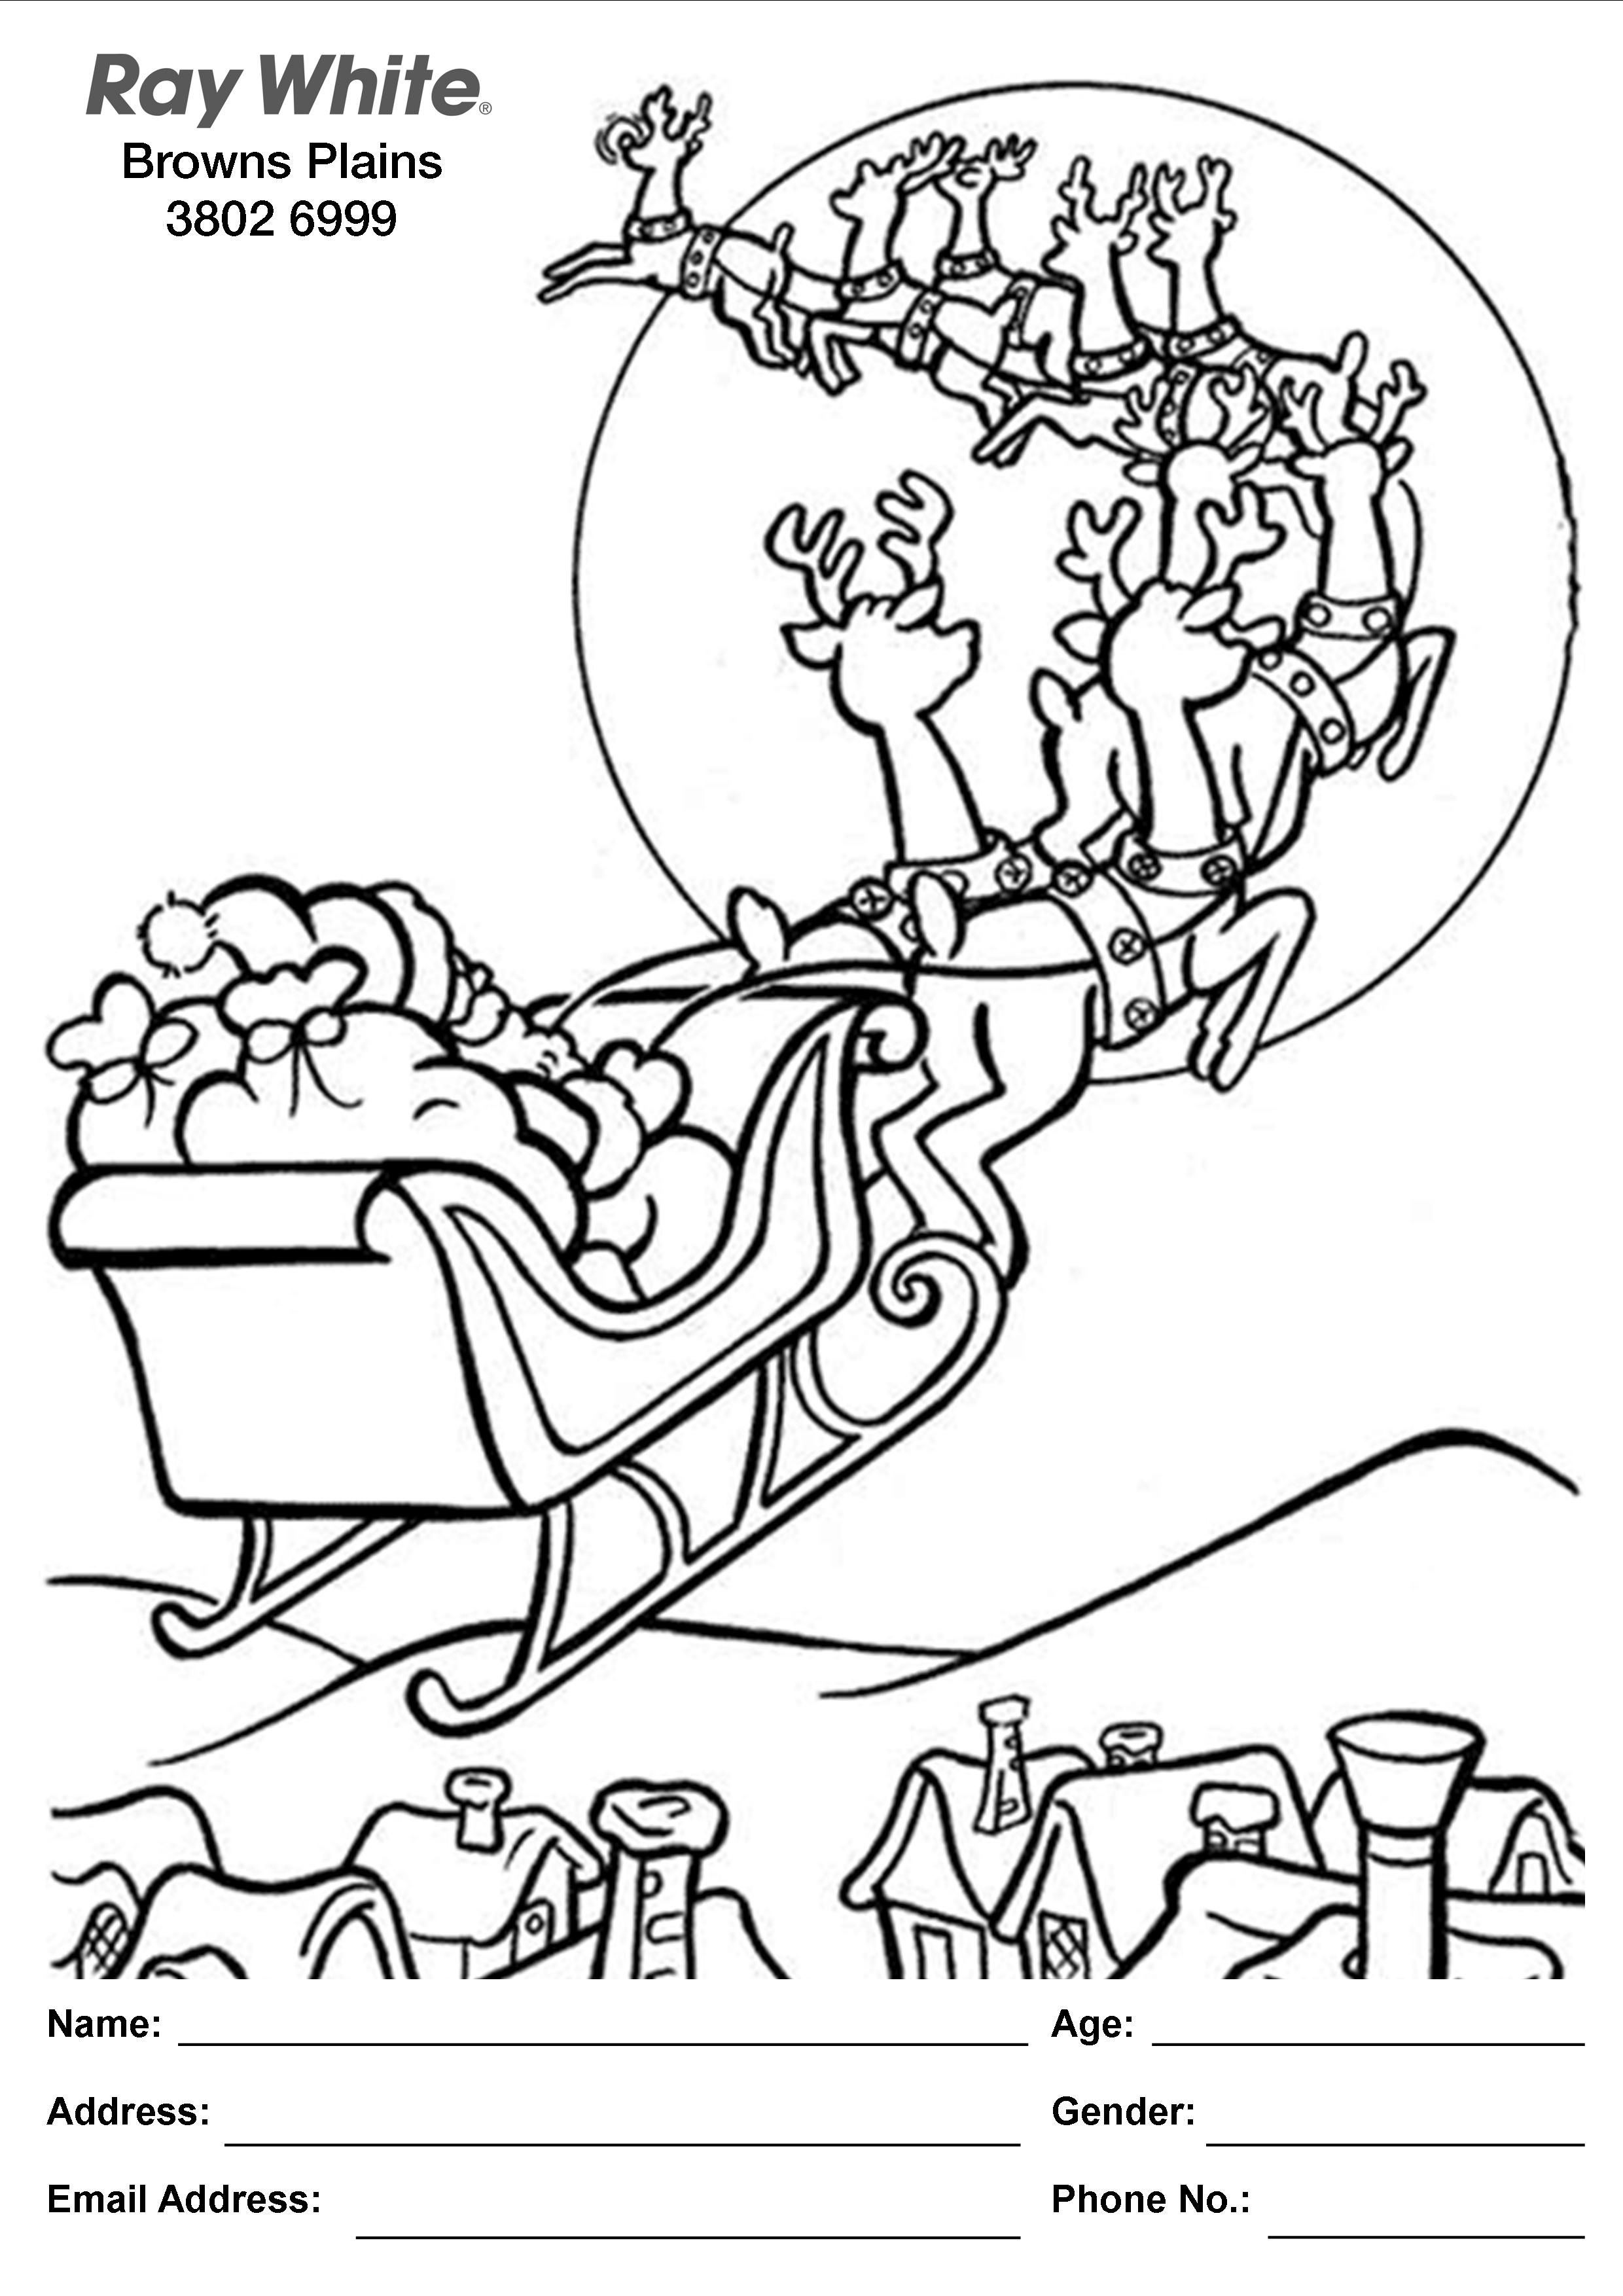 Coloring book real estate - Attention Kids Enter The Colouring In Competition For Your Chance To Win Some Extra Presents For Under Your Tree This Christmas